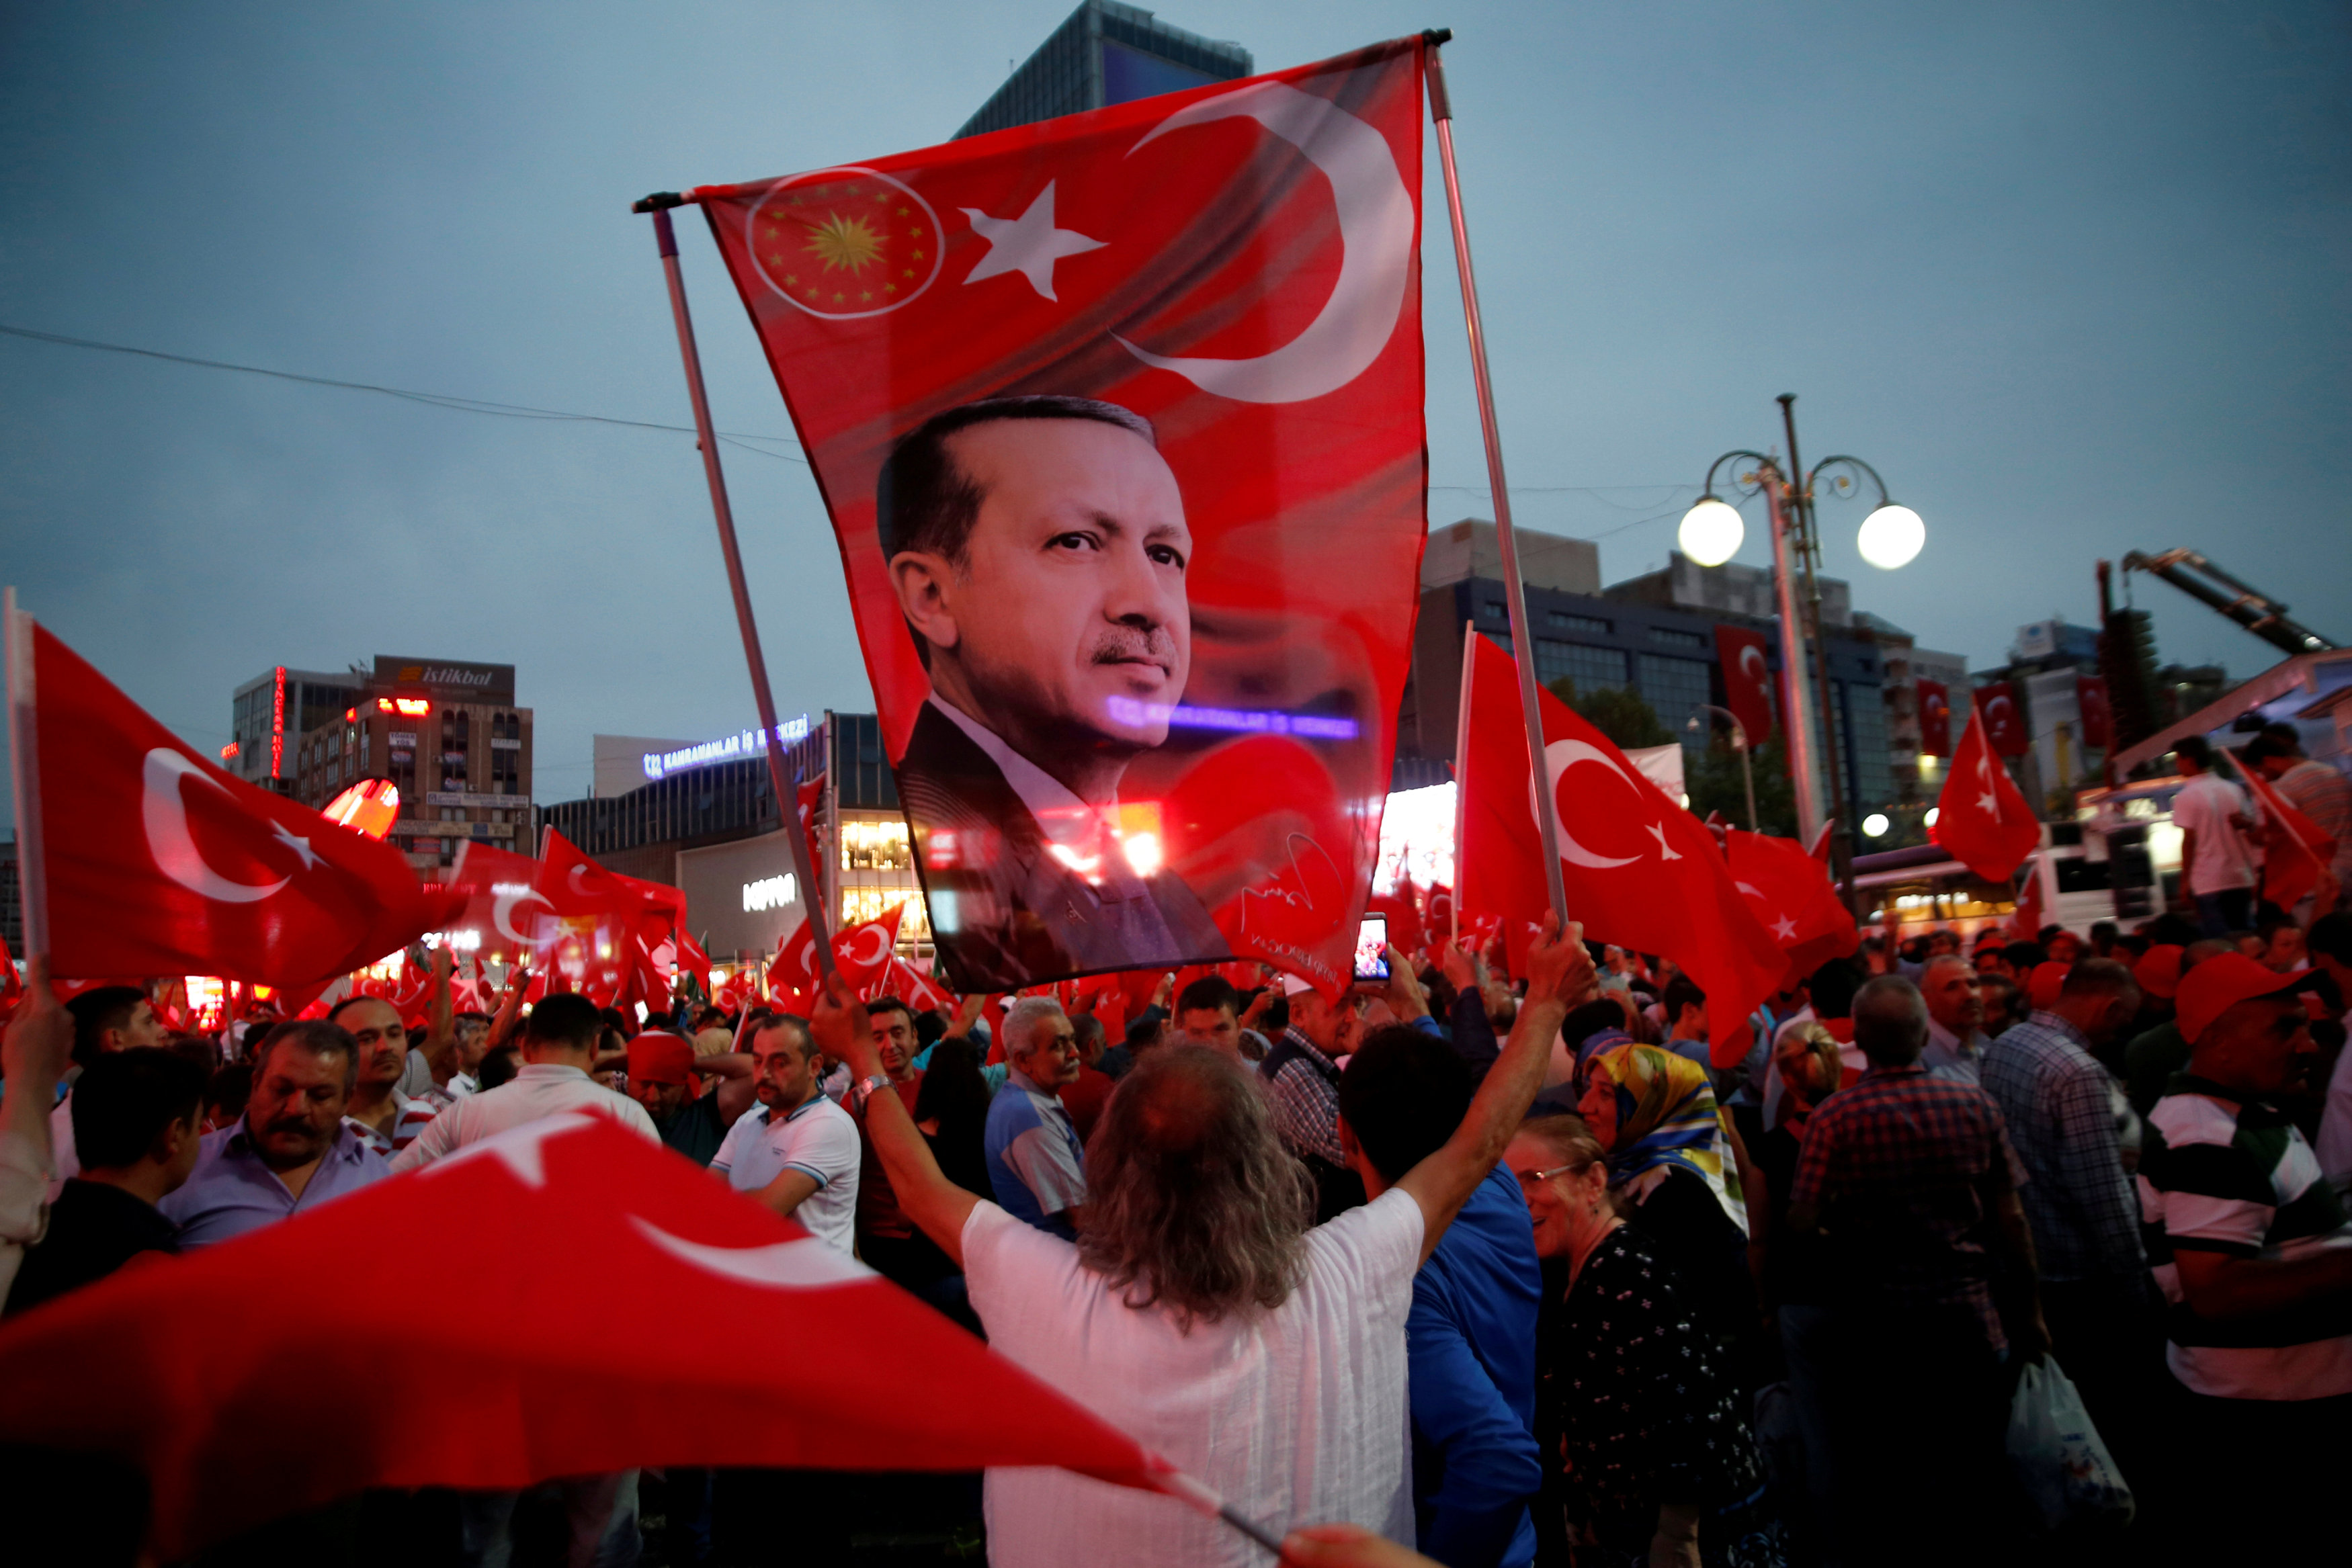 A supporter holds a flag depicting Turkish President Tayyip Erdogan during a pro-government demonstration in Ankara, Turkey,